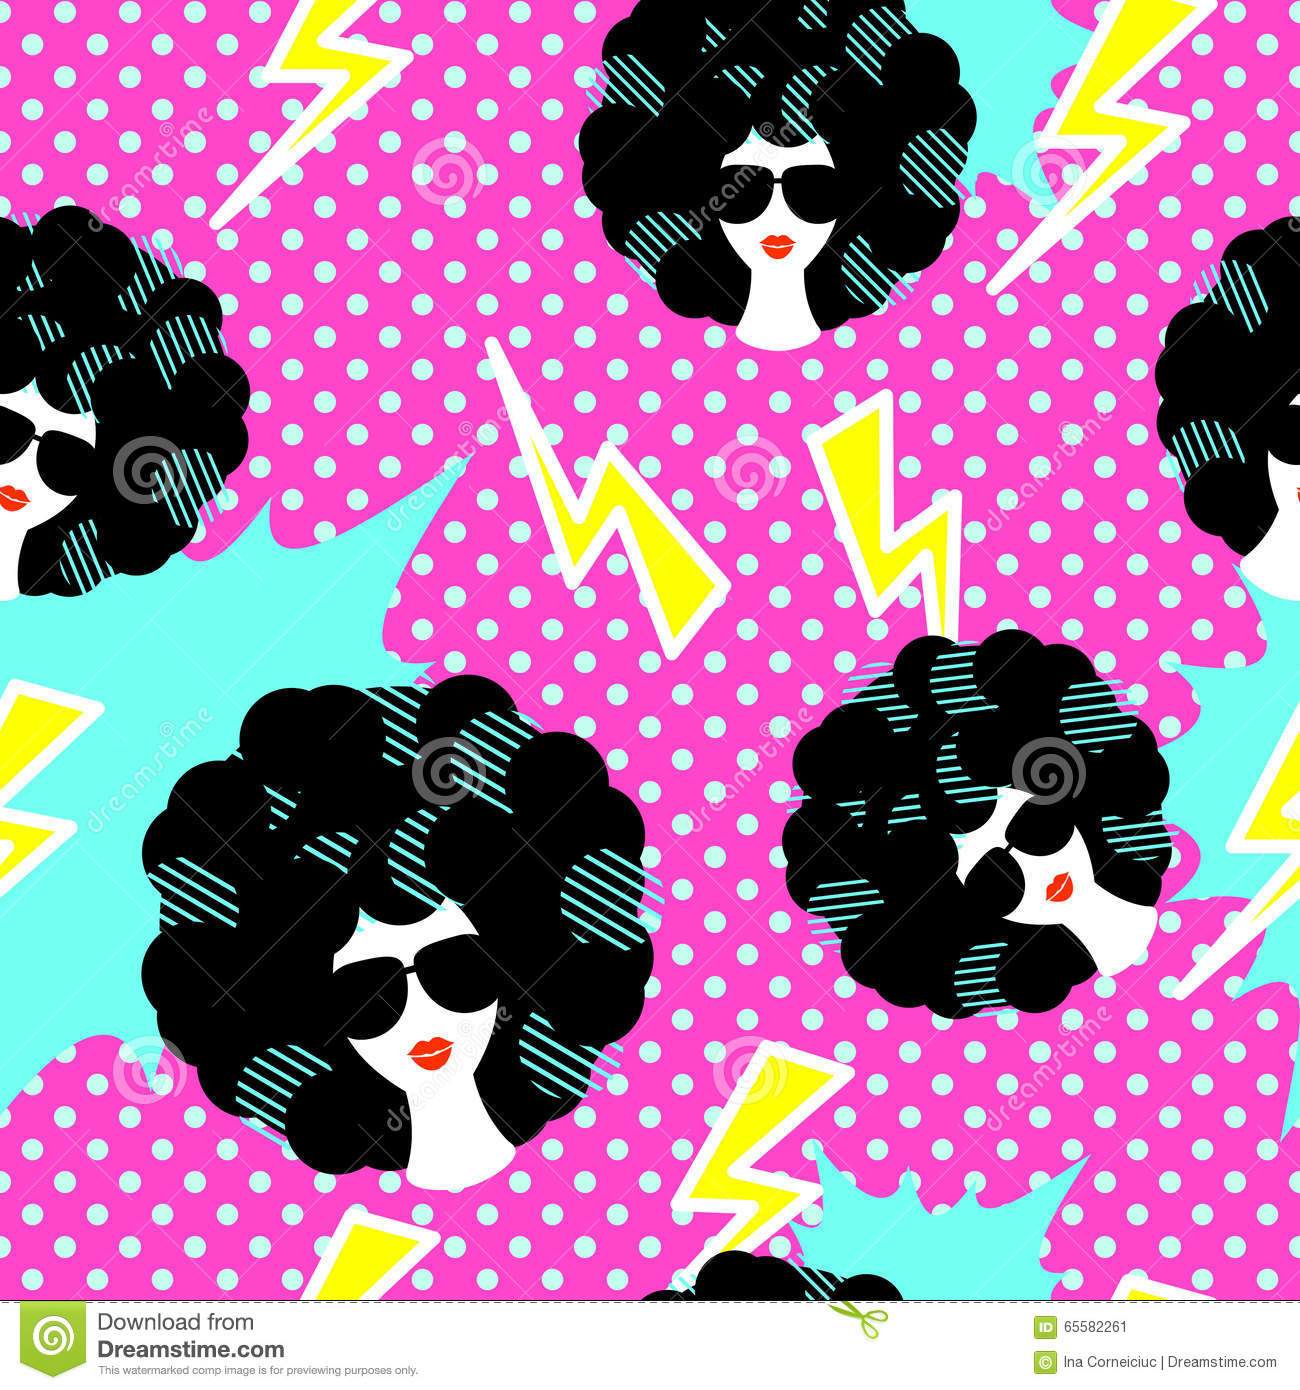 Retro 80s Disco Party Seamless Pattern Stock Vector - Image: 65582261